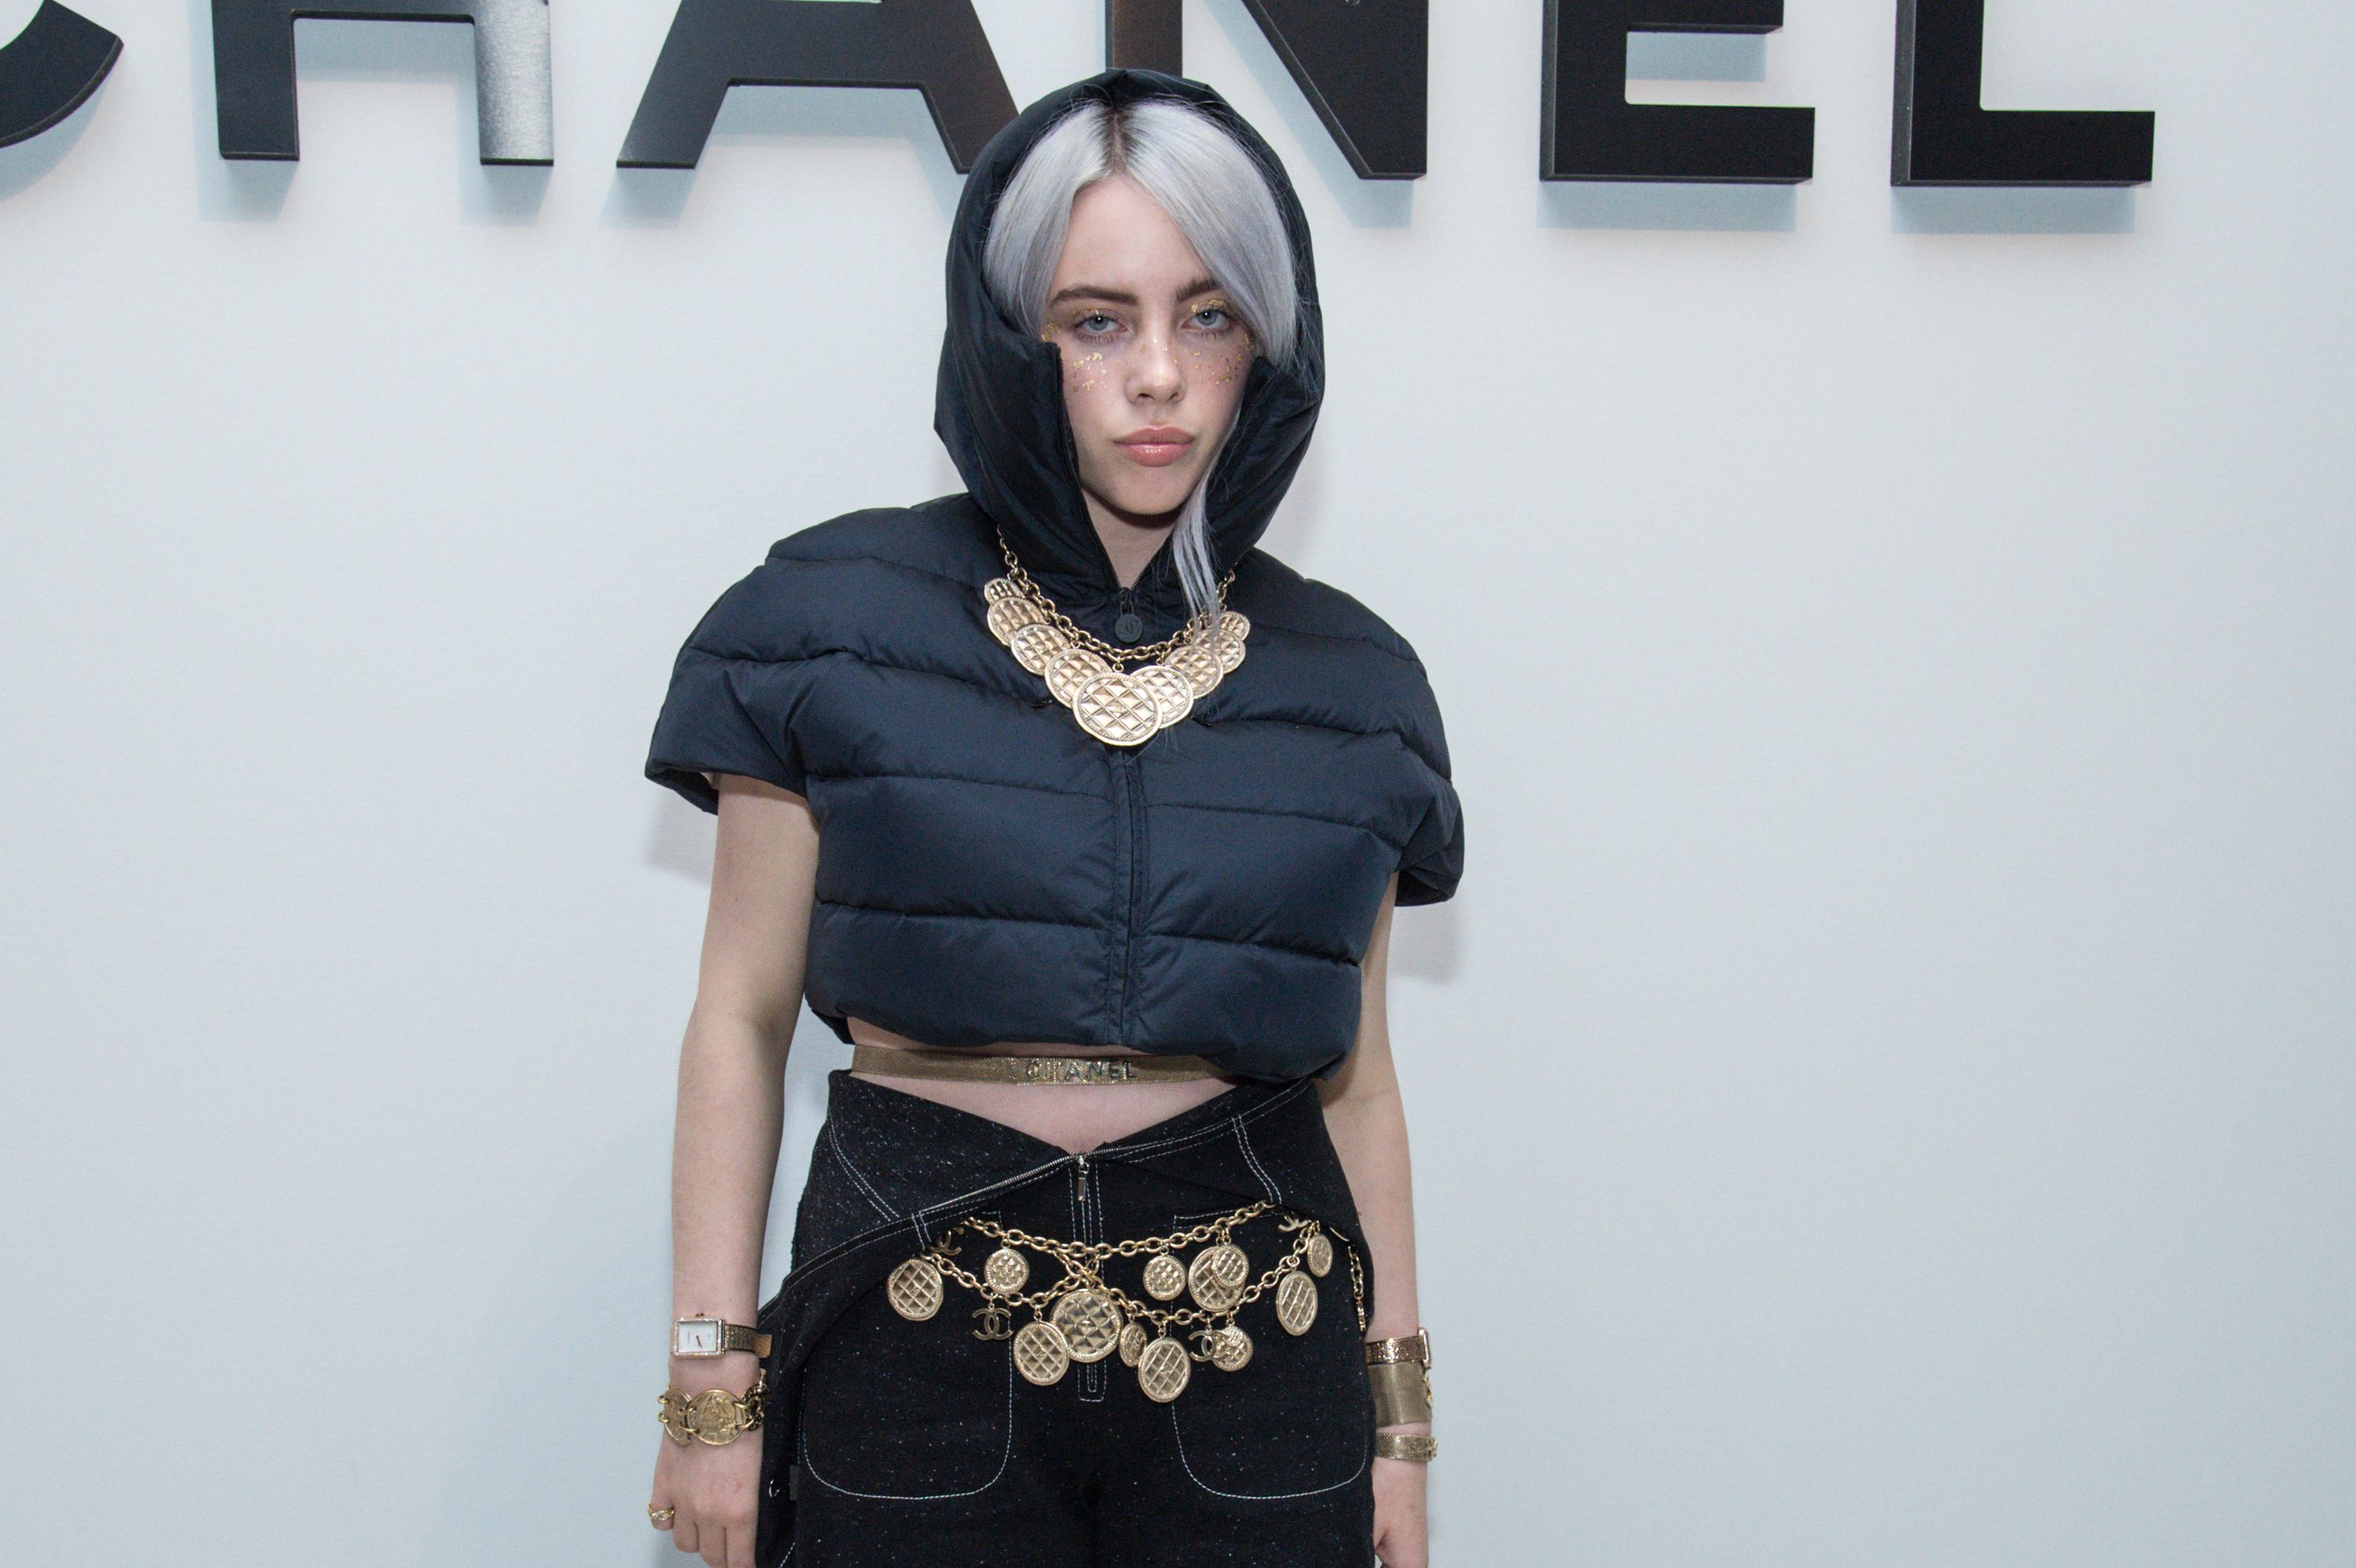 NEW YORK, NY - NOVEMBER 10:  Singer Billie Eilish, dressed in Chanel, attends the CHANEL celebration of the launch of The Coco Club at The Wing Soho on November 10, 2017 in New York City.  (Photo by Mark Sagliocco/Getty Images)